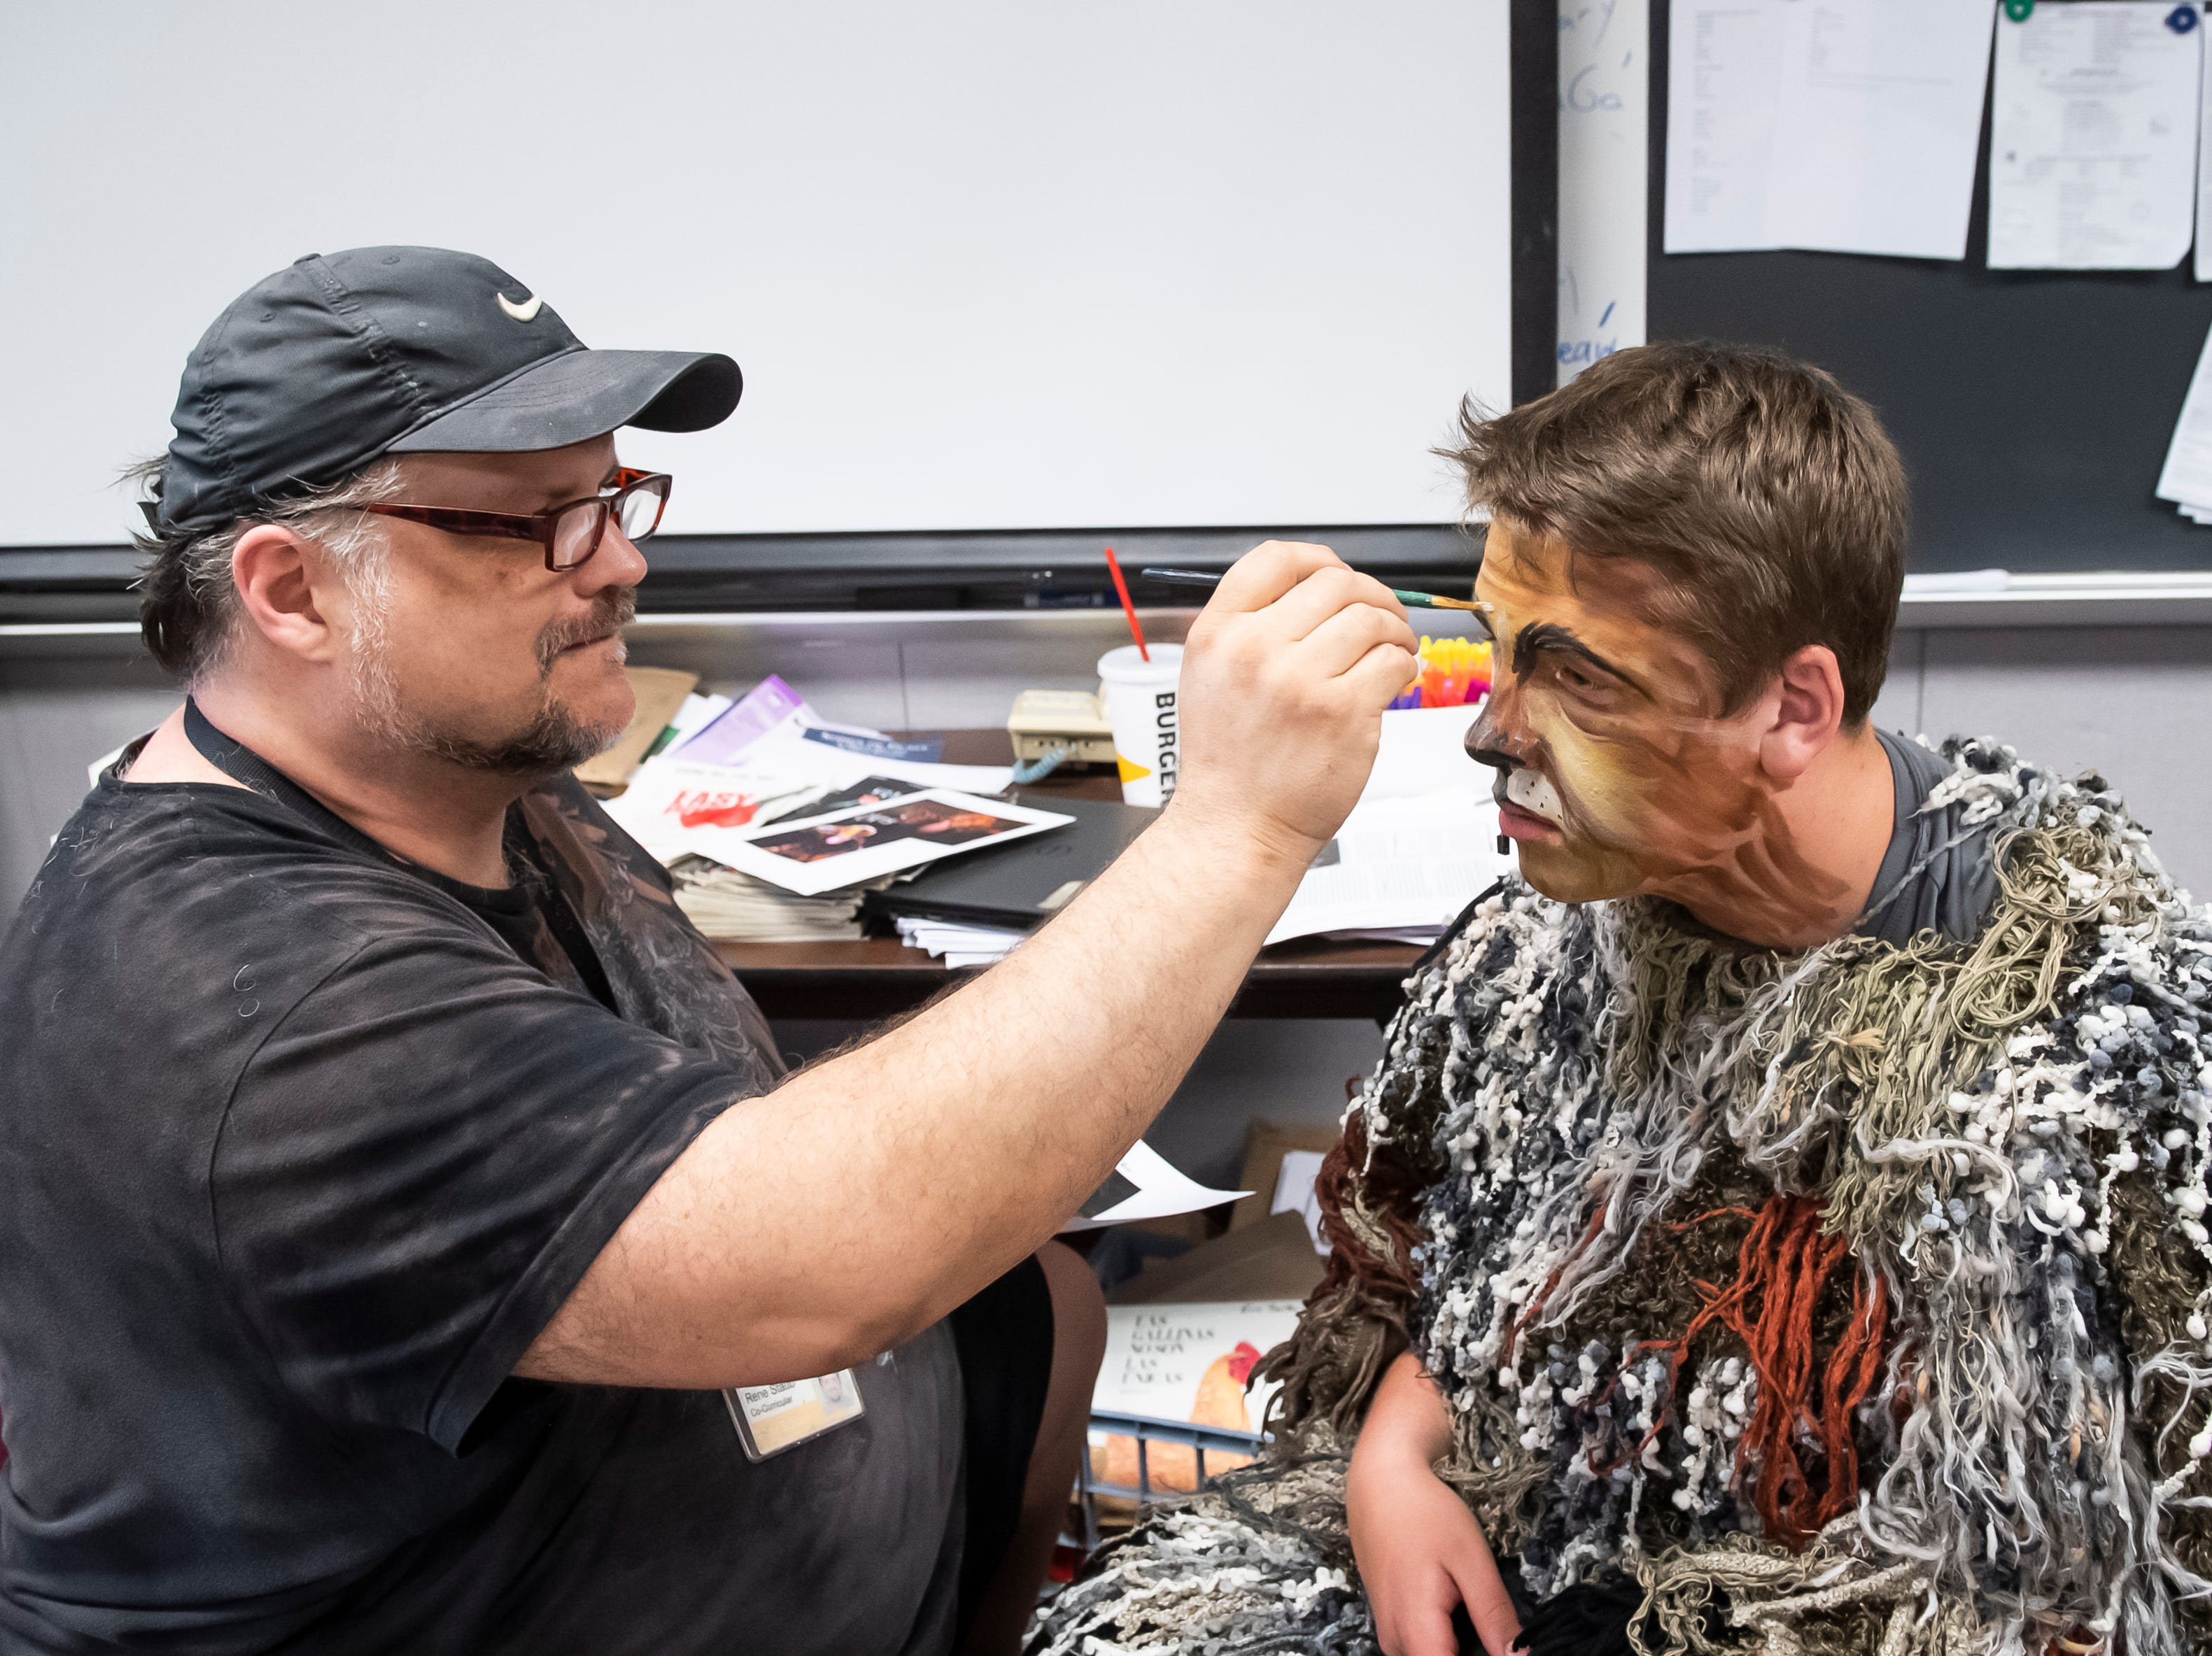 """Director Rene Staub applies makeup to Ben Newman's face before the start of a dress rehearsal for Hanover High School's production of """"Cats"""" on Wednesday, April 10, 2019. Newman plays the role of principle character Old Deuteronomy."""